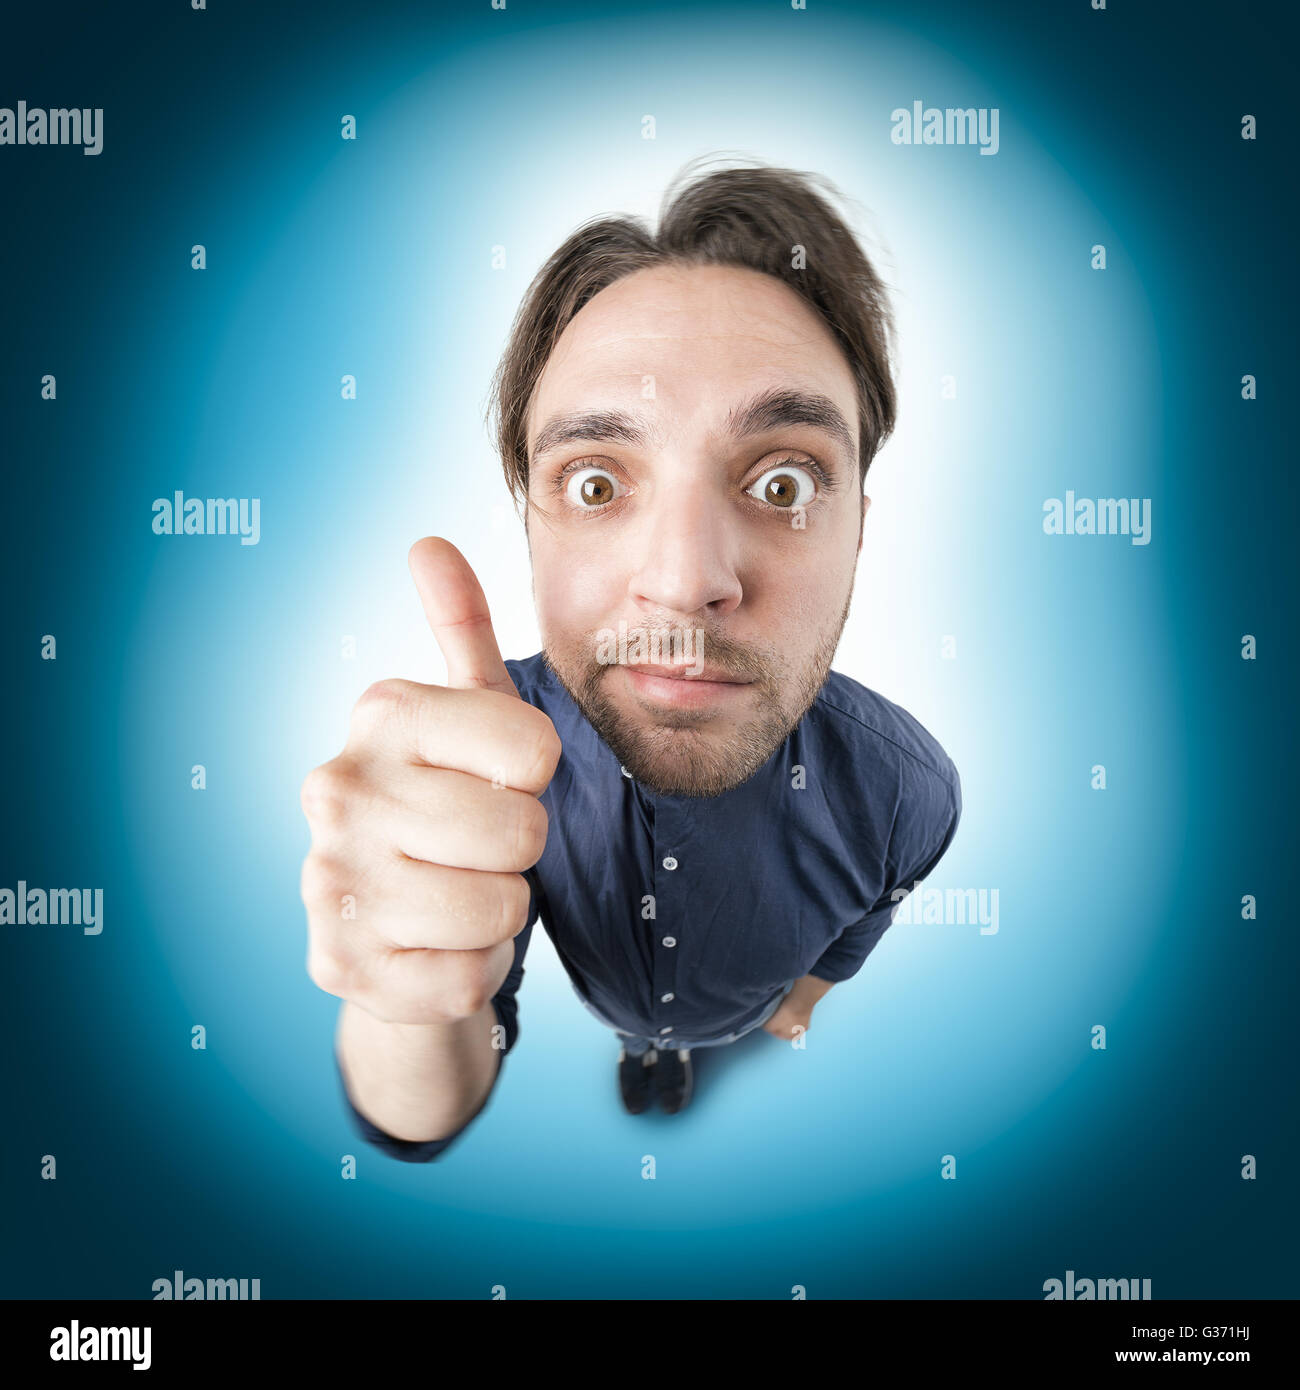 Funny nerd man say ok with thumb up and crazy hair style - Stock Image